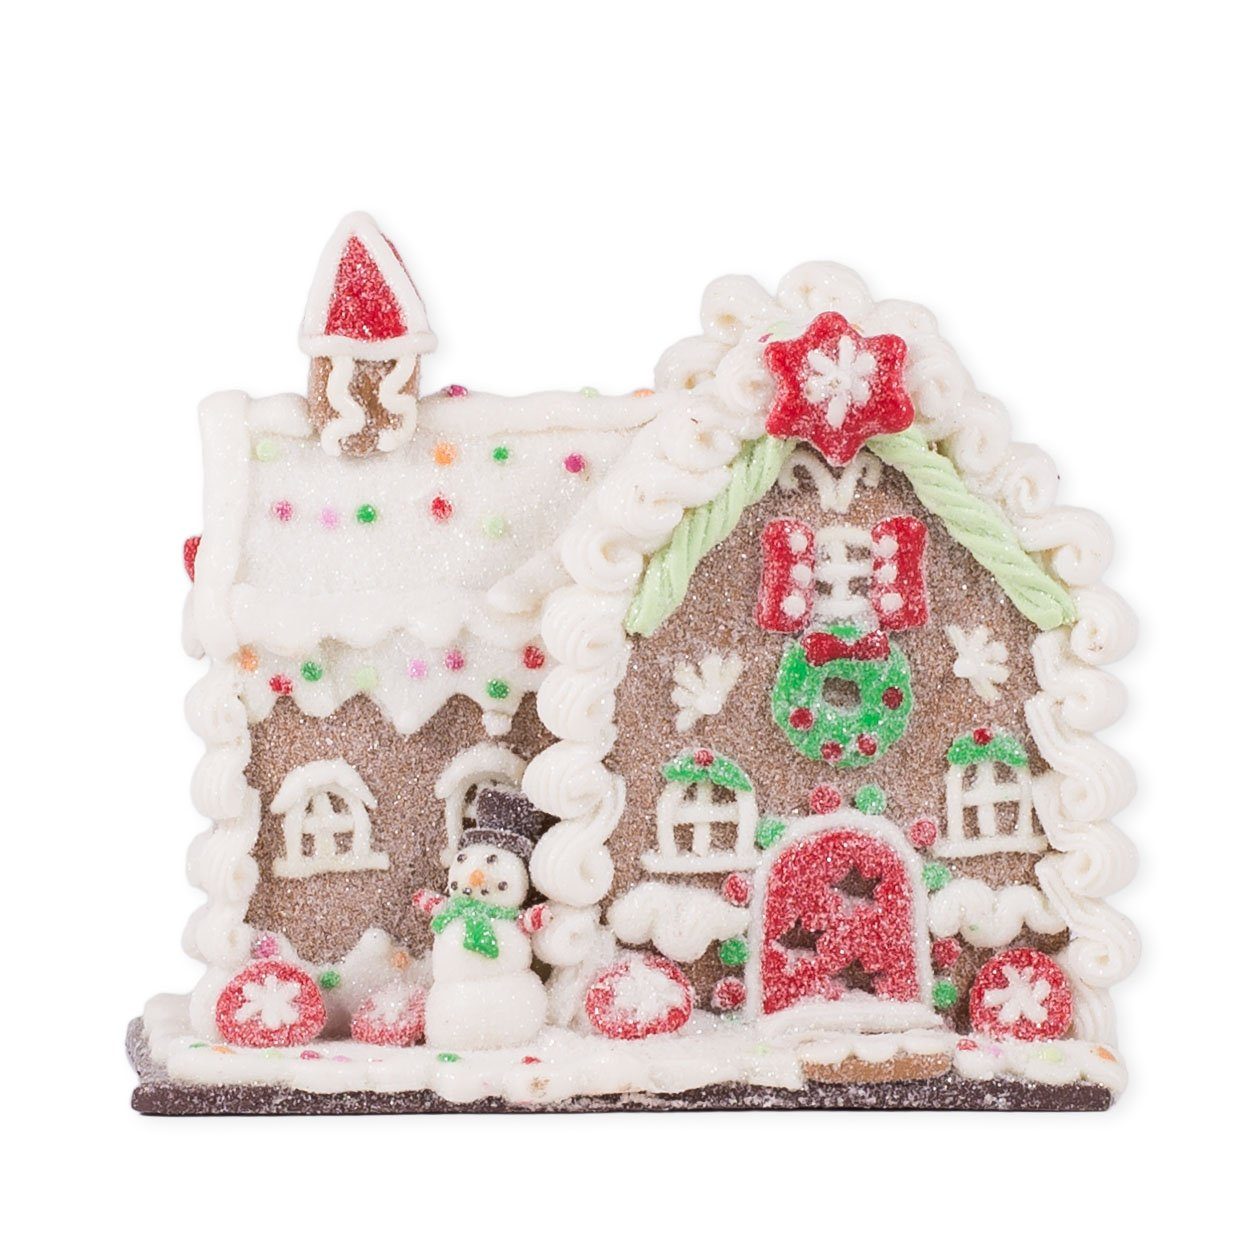 Gingerbread Home Decor: Gingerbread House Table Decorations